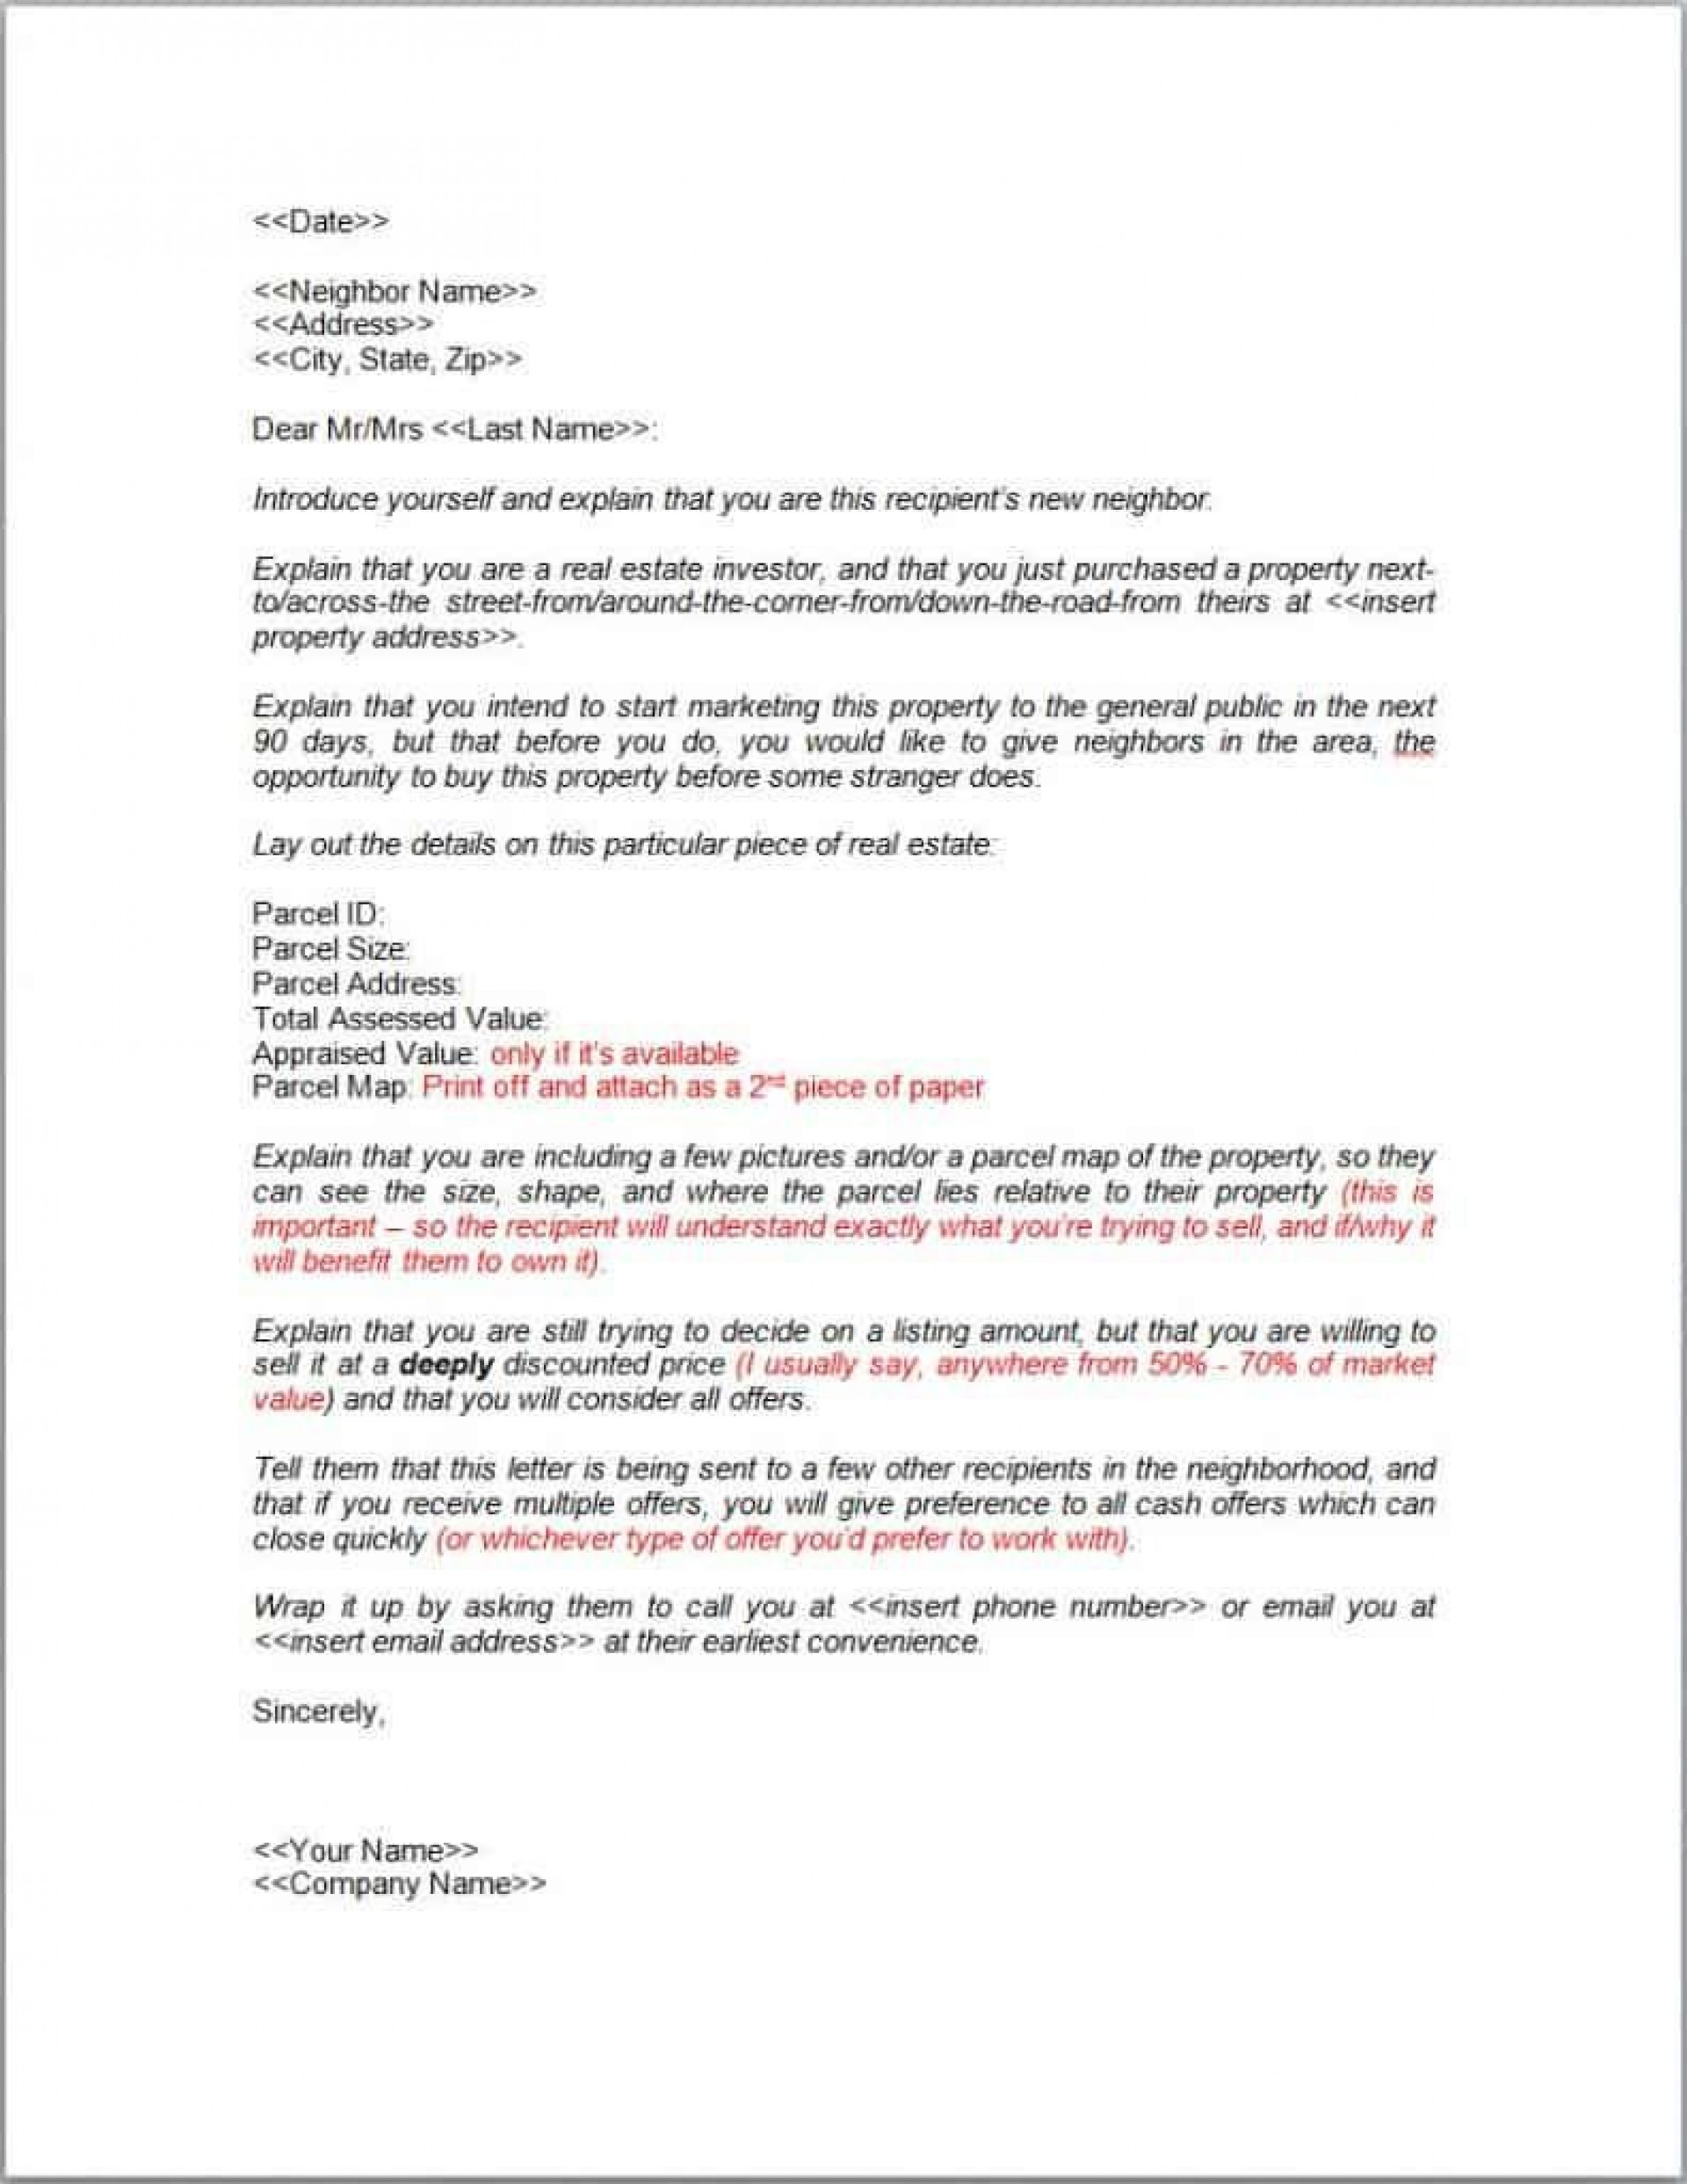 003 Dreaded Real Estate Marketing Letter Template High Definition  Templates1920